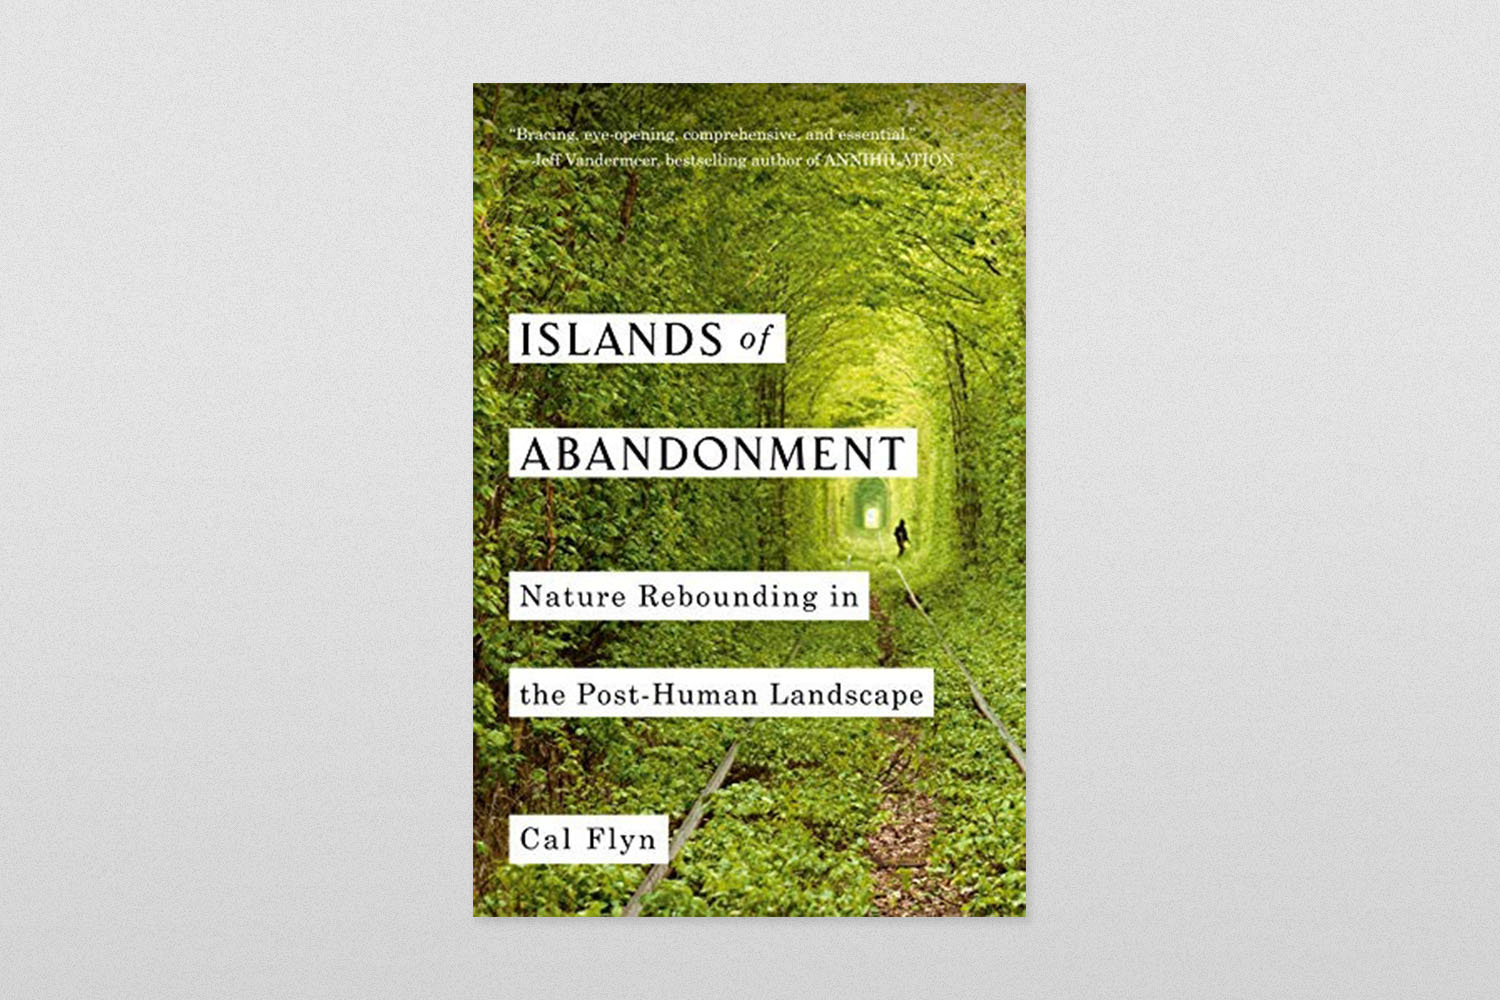 islands of abandonment book